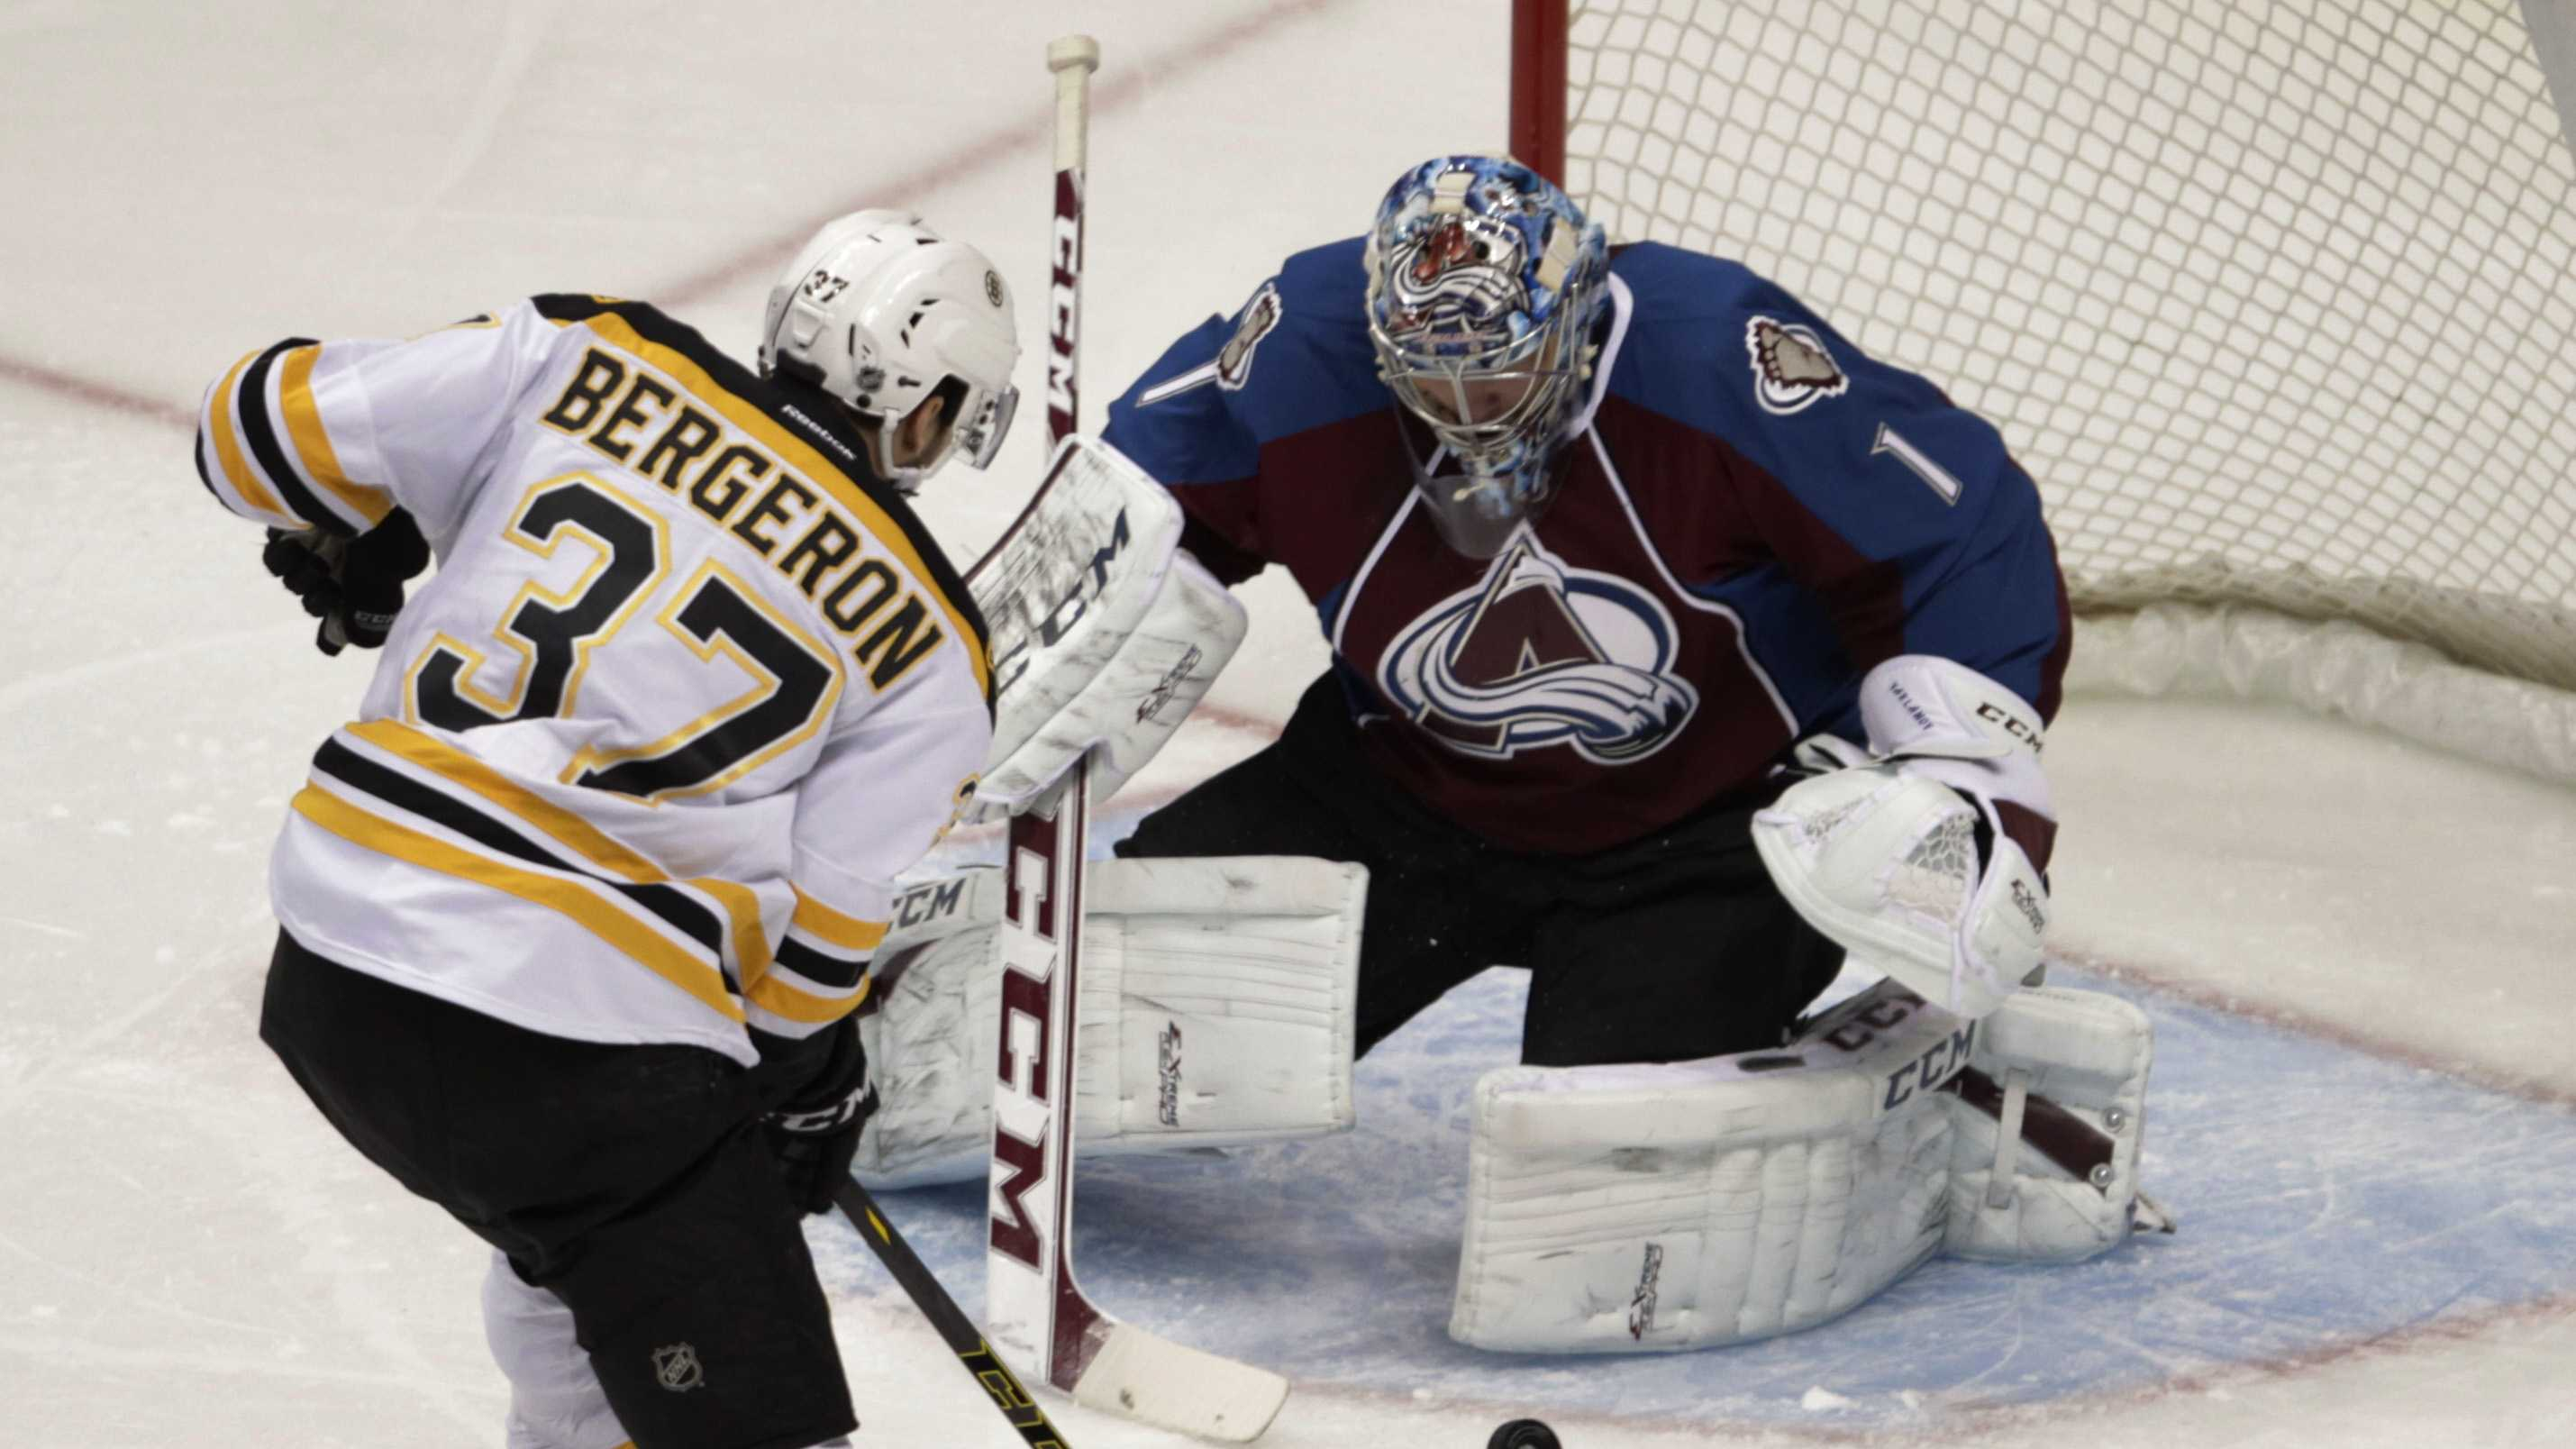 Boston Bruins center Patrice Bergeron (37) scores on Colorado Avalanche goalie Semyon Varlamov (1) the first period of an NHL hockey game in Denver on Friday, March 21, 2014.